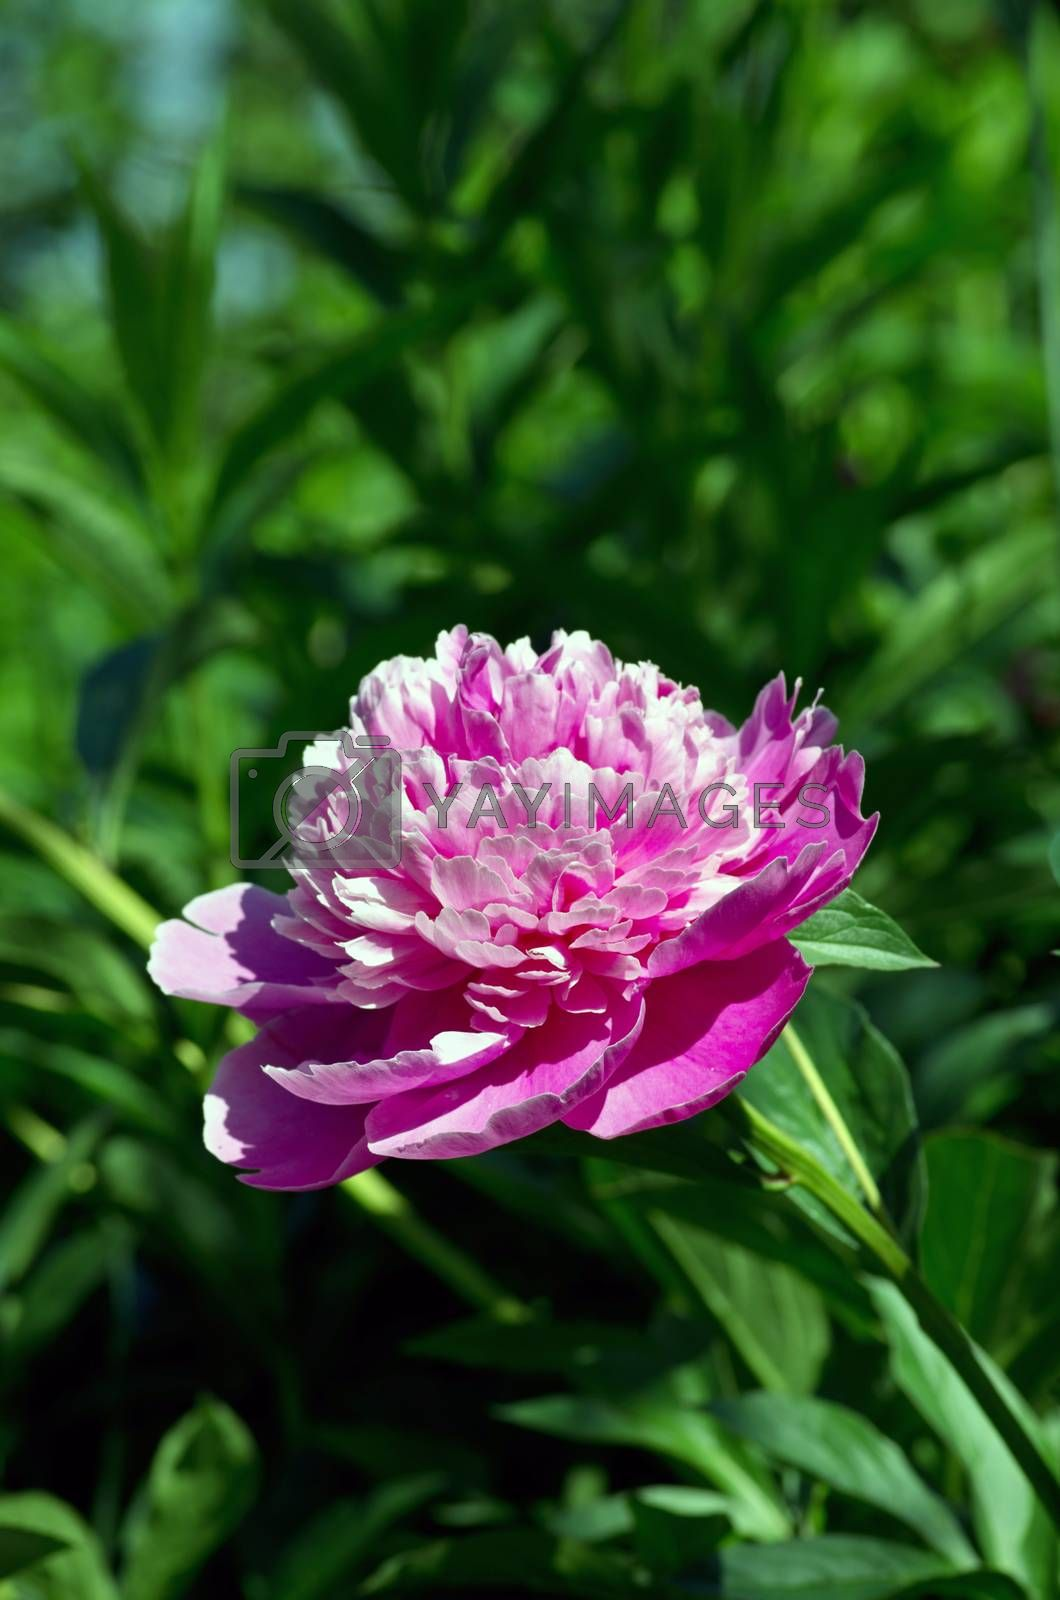 Royalty free image of Closeup Pink Peonies Flowers. by dolnikow